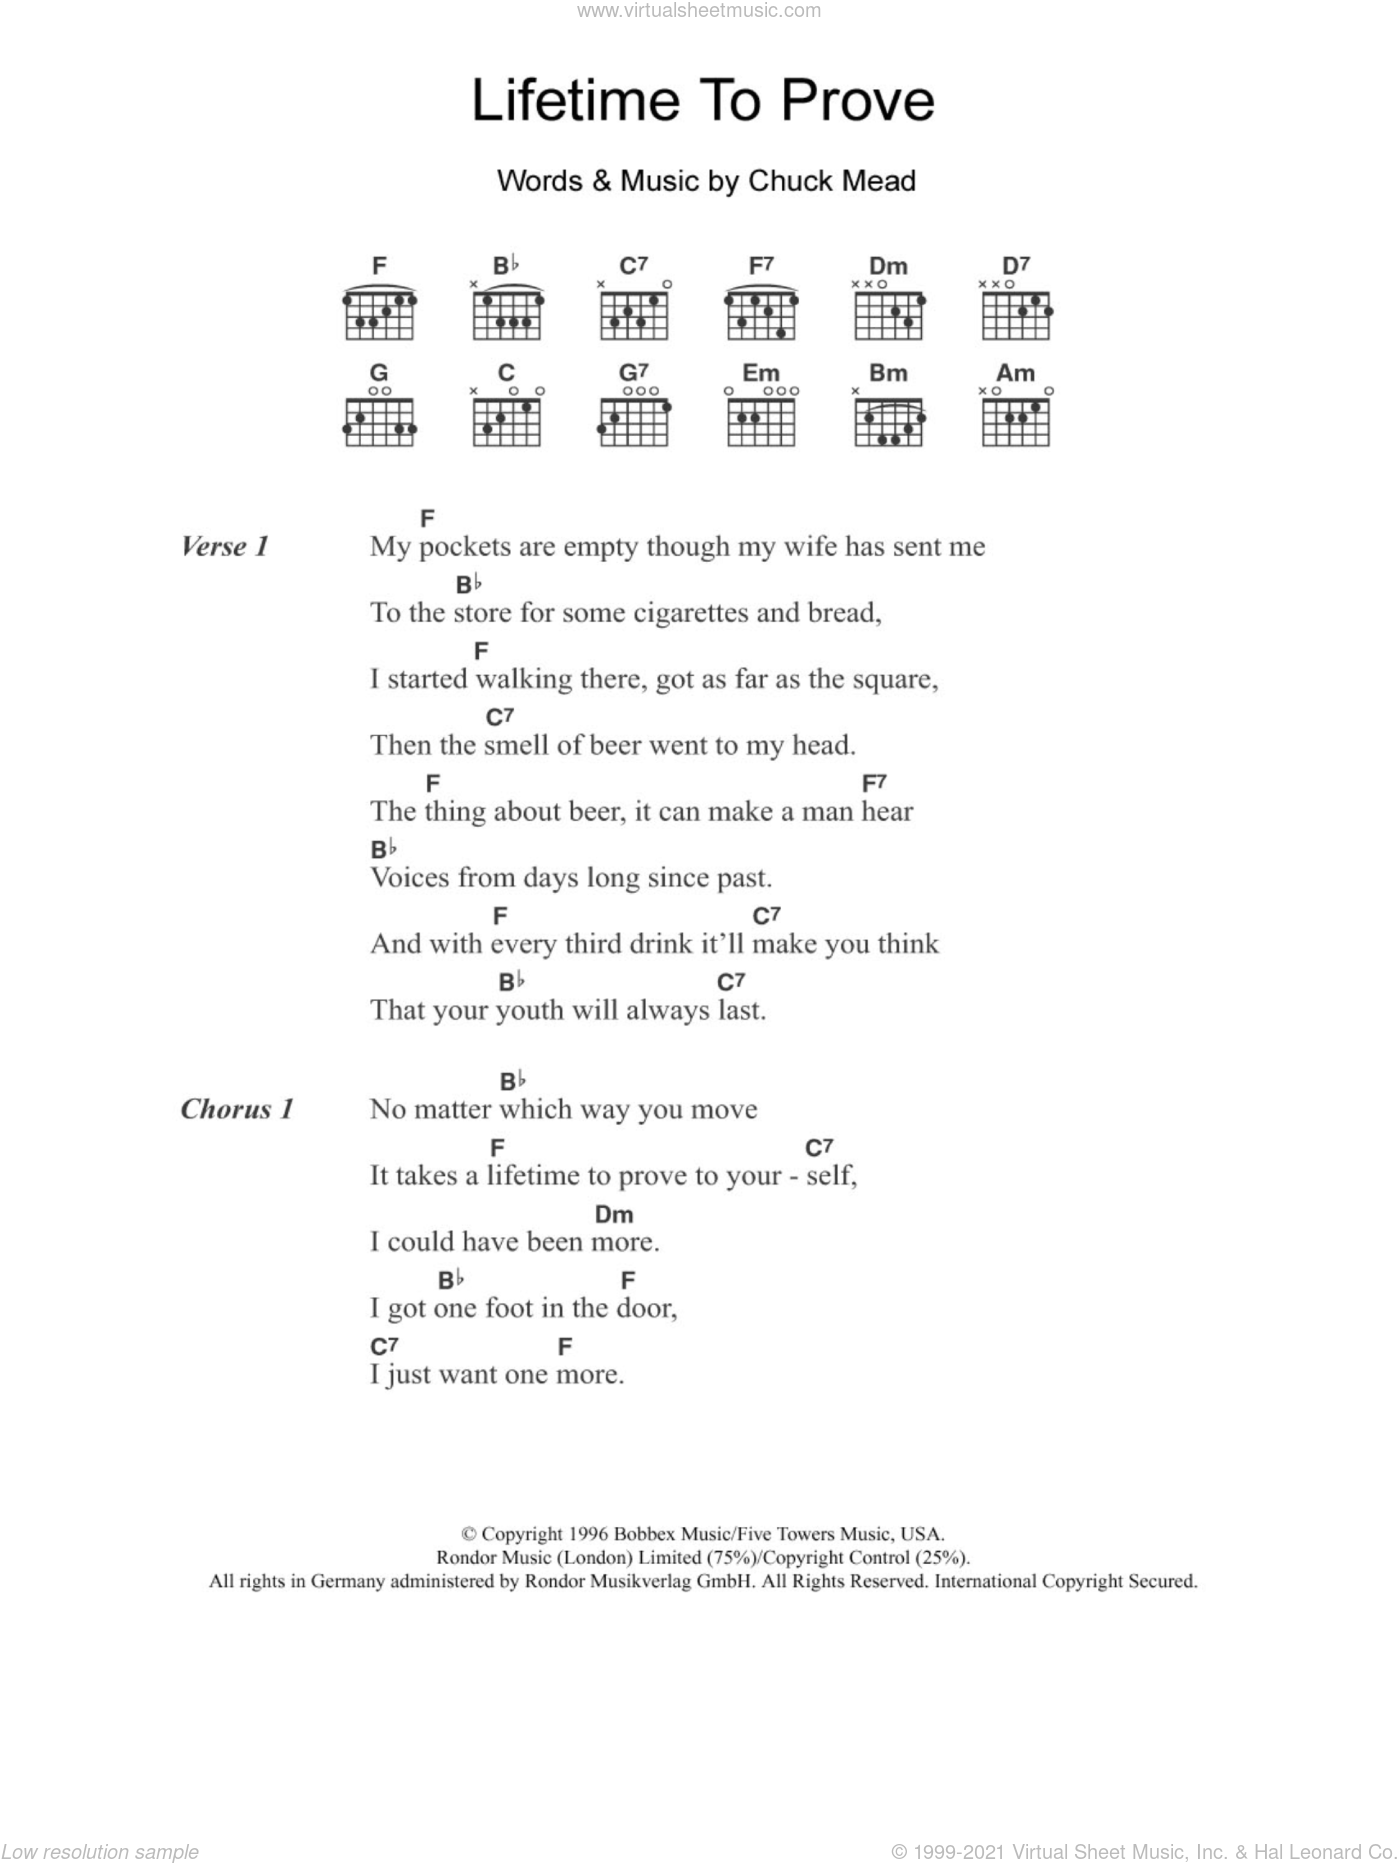 Lifetime To Prove sheet music for guitar (chords) by BR5-49